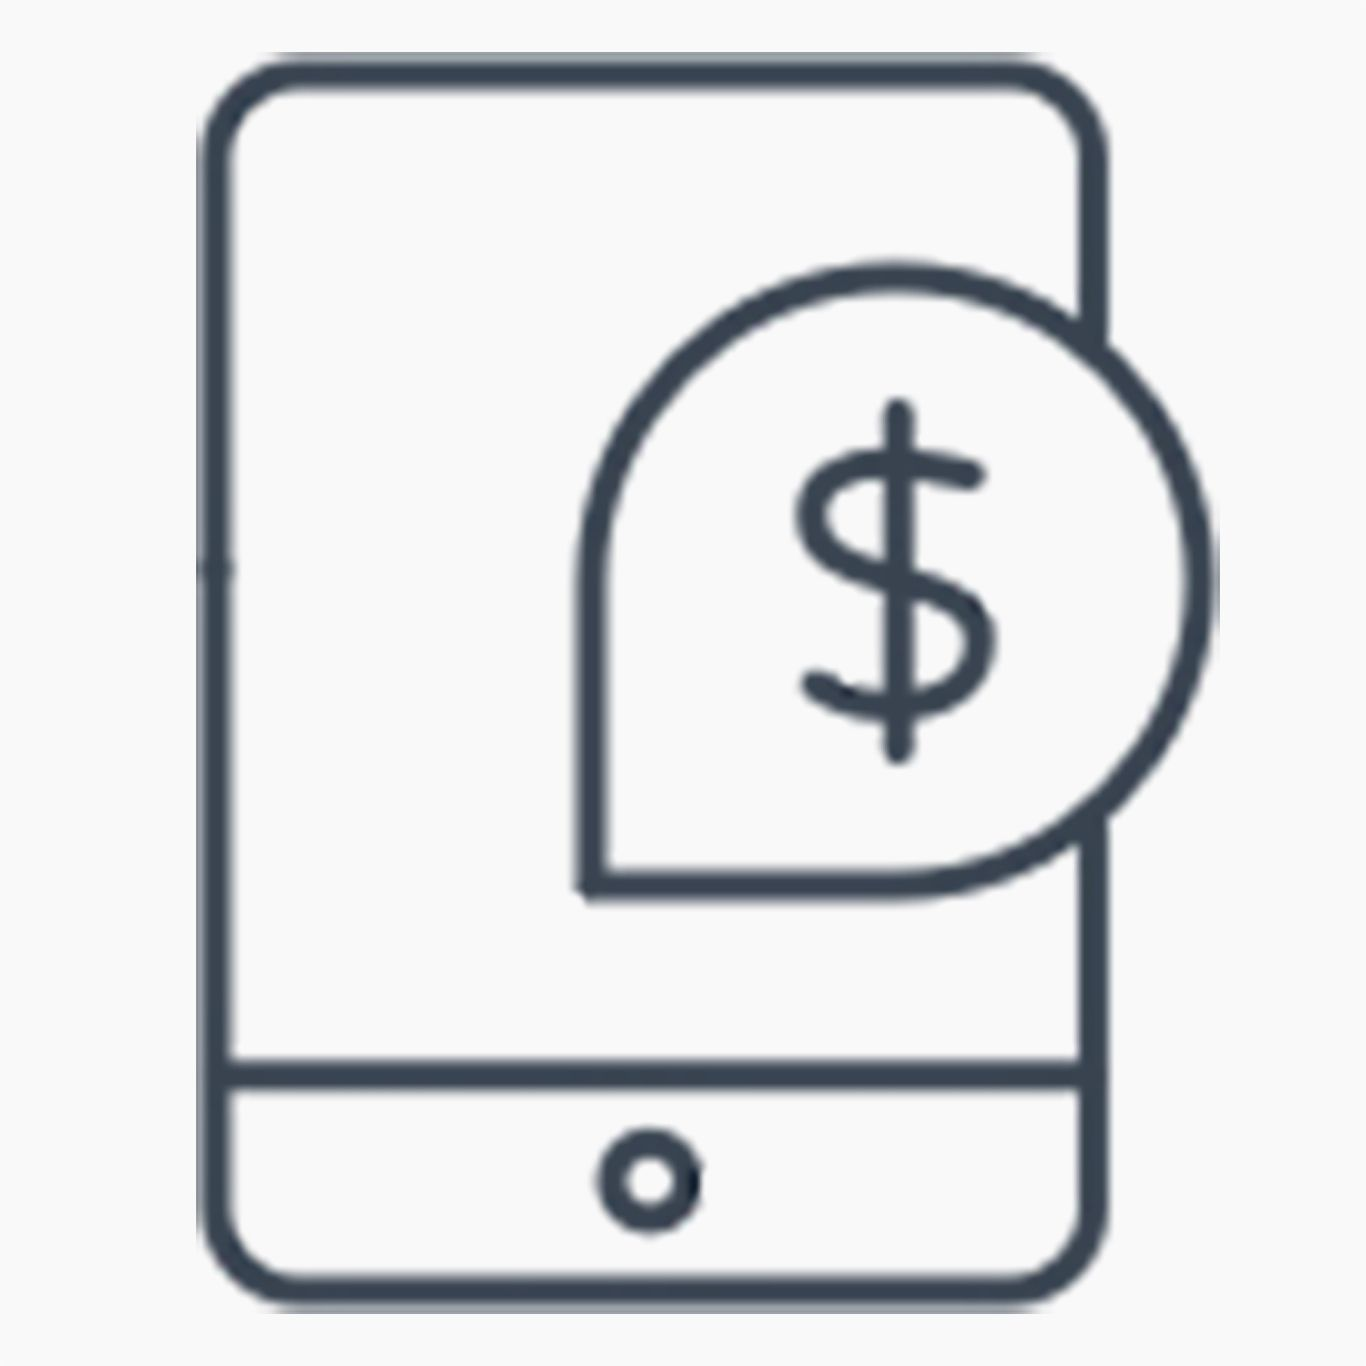 Mobile icon with dollar symbol